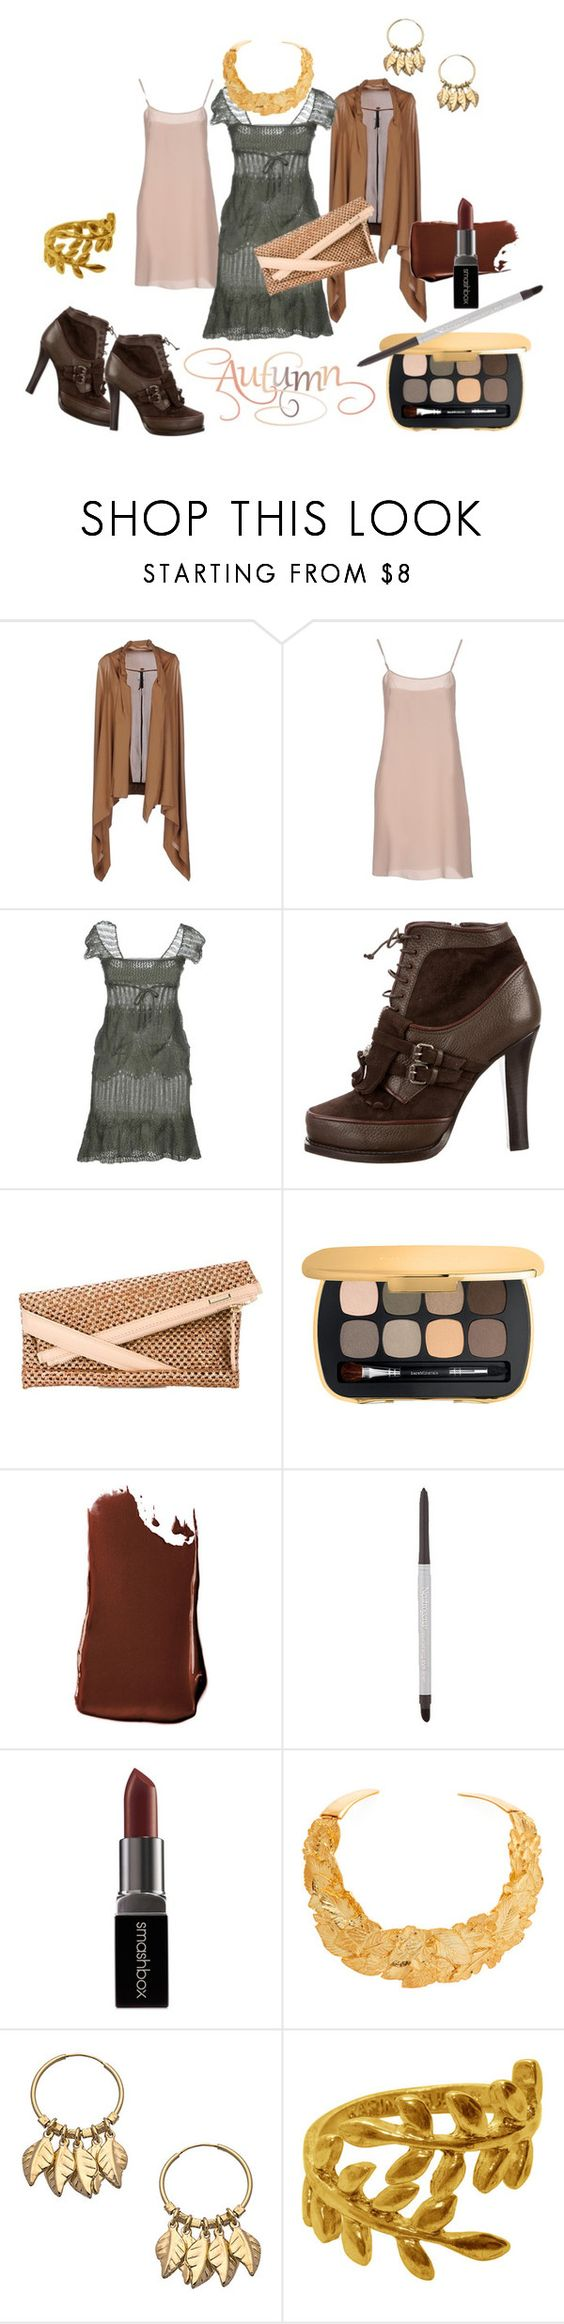 """Here Comes Autumn '16"" by clothingcollector1 ❤ liked on Polyvore featuring Manila Grace, Schumacher, Ermanno by Ermanno Scervino, Tabitha Simmons, Zanellato, Bare Escentuals, Smashbox, Neutrogena, Kenneth Jay Lane and Betty Carré"